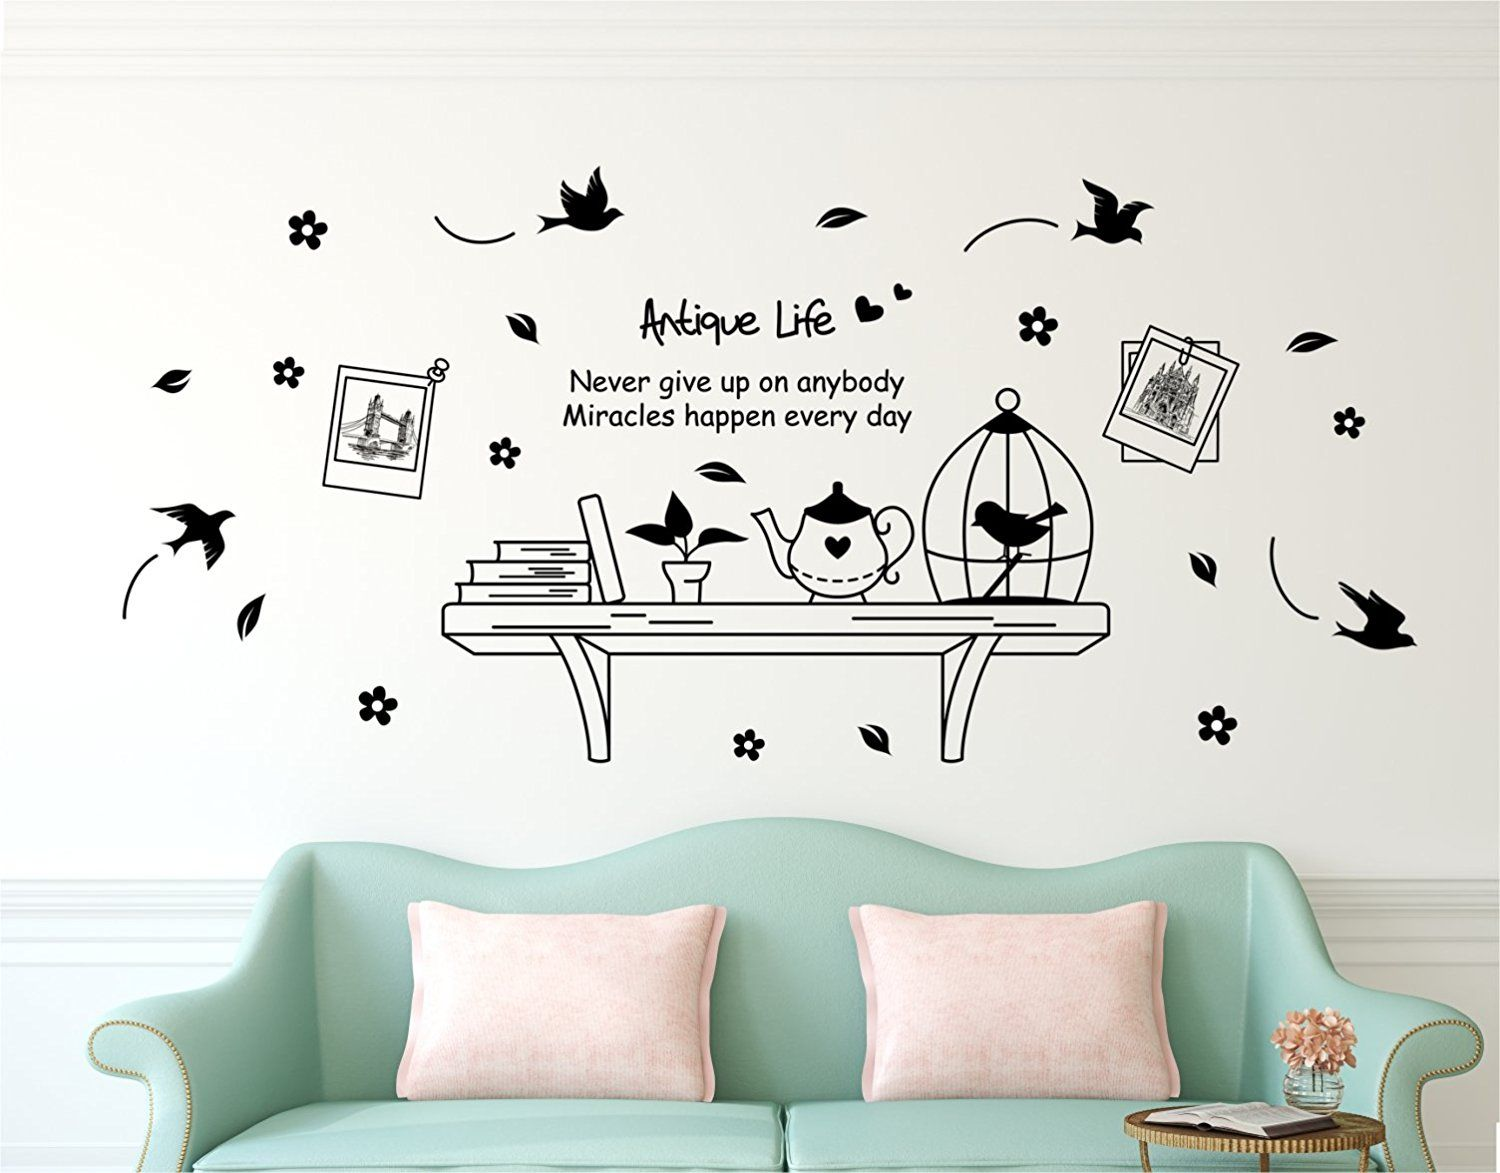 Buy Solimo Wall Sticker For Living Room Wall Shelf Ideal Siz